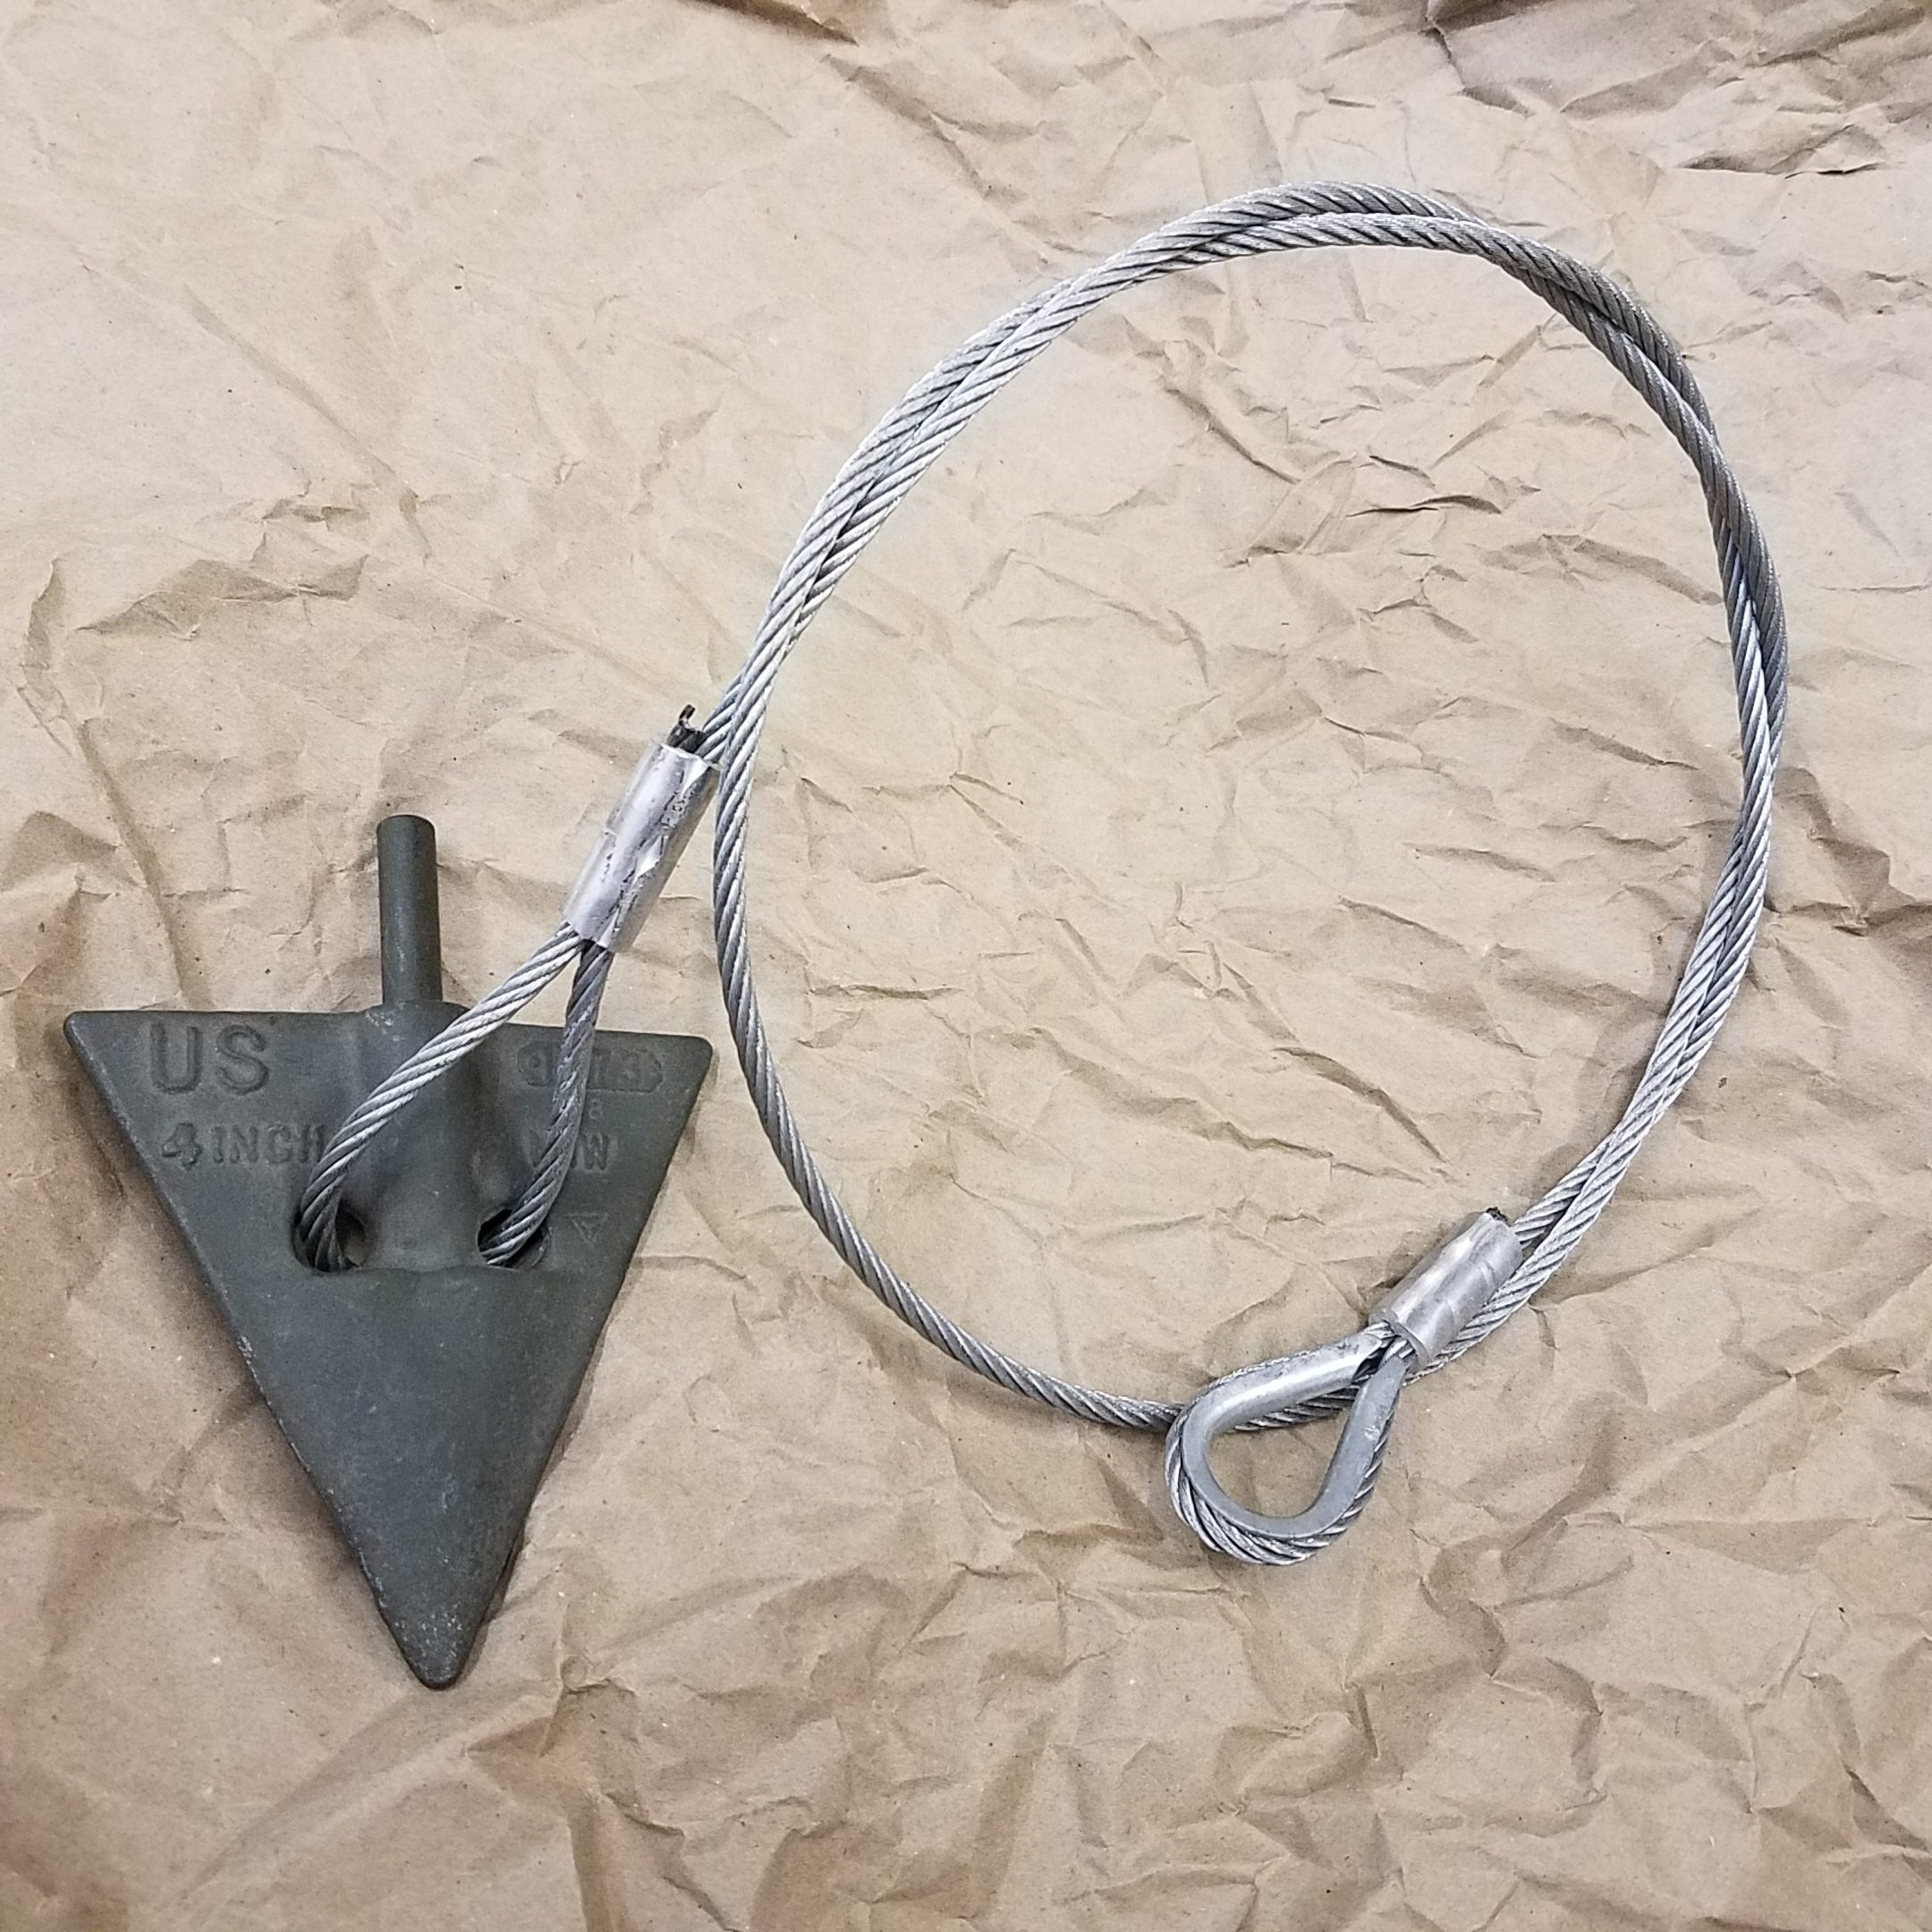 Arrowhead Anchor zoom